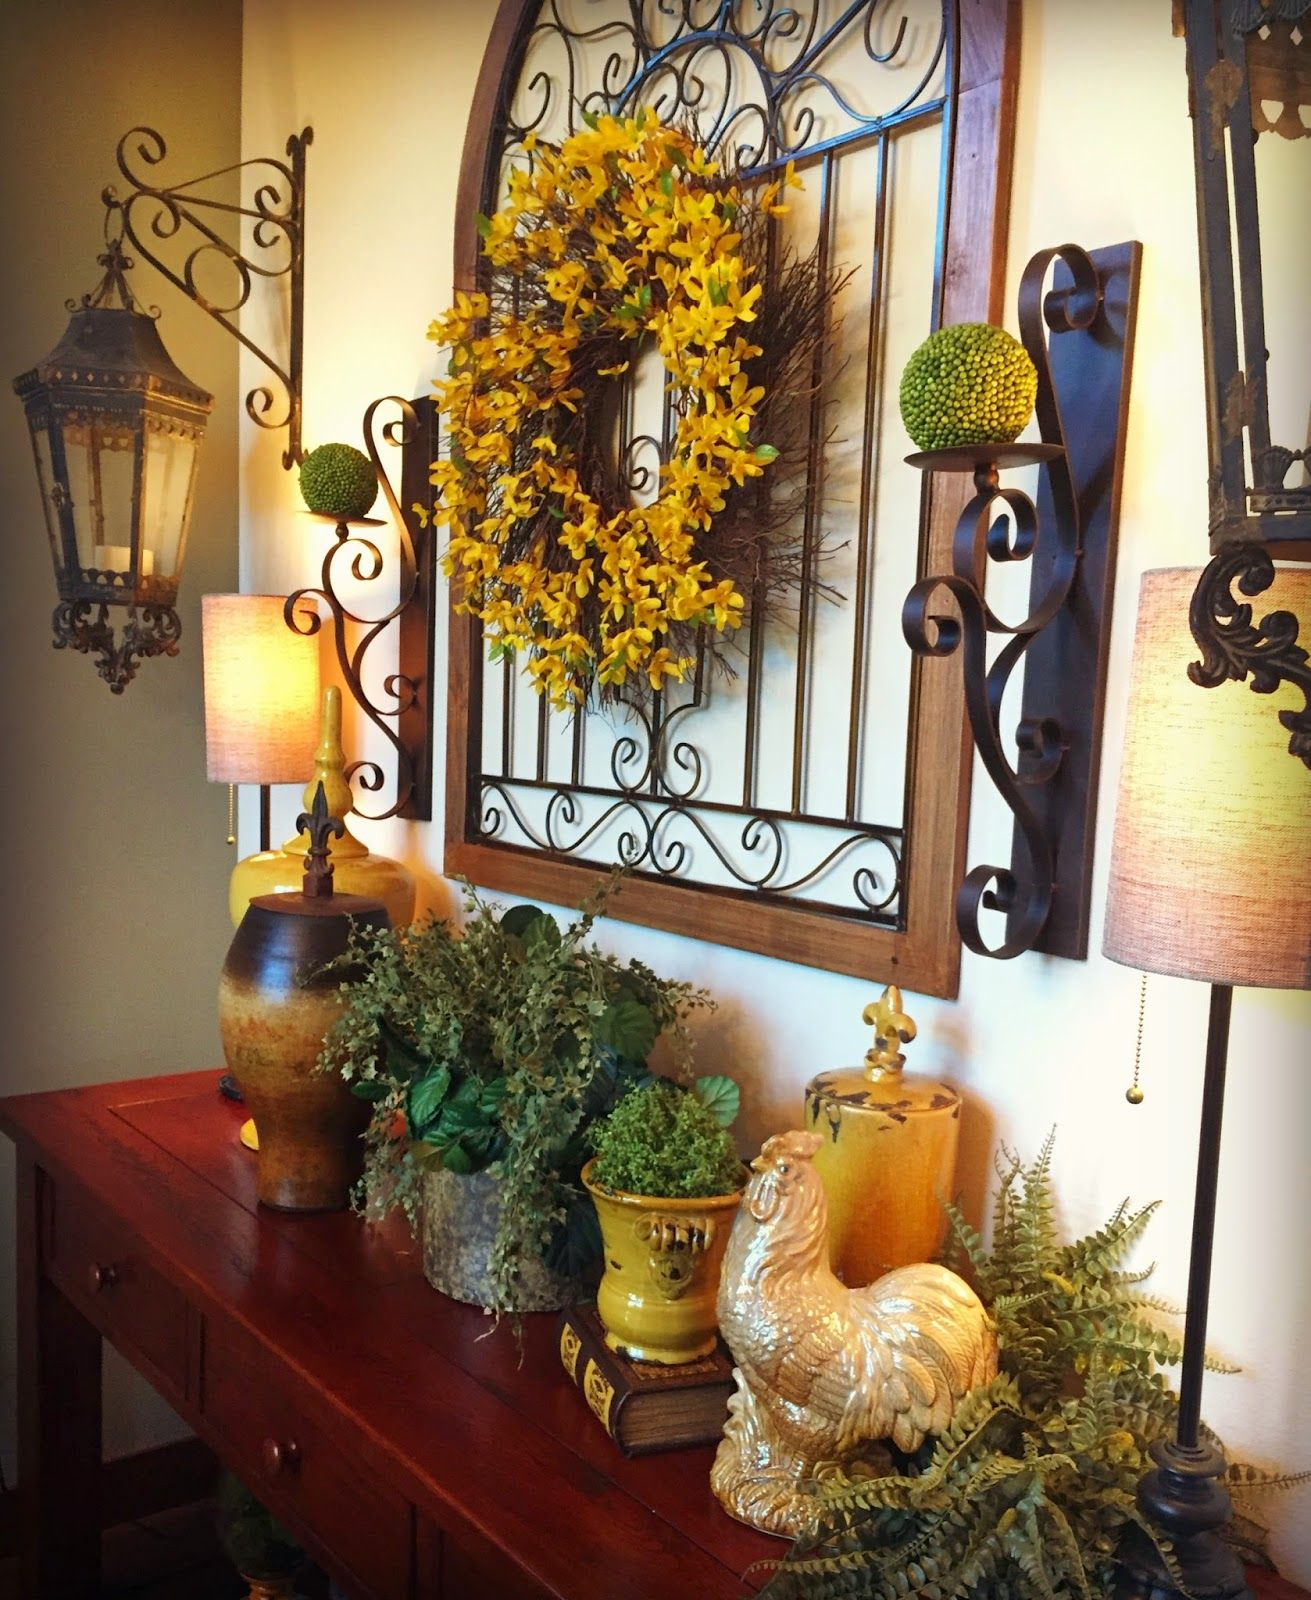 The Tuscan Home is a decorating blog that focuses on ...